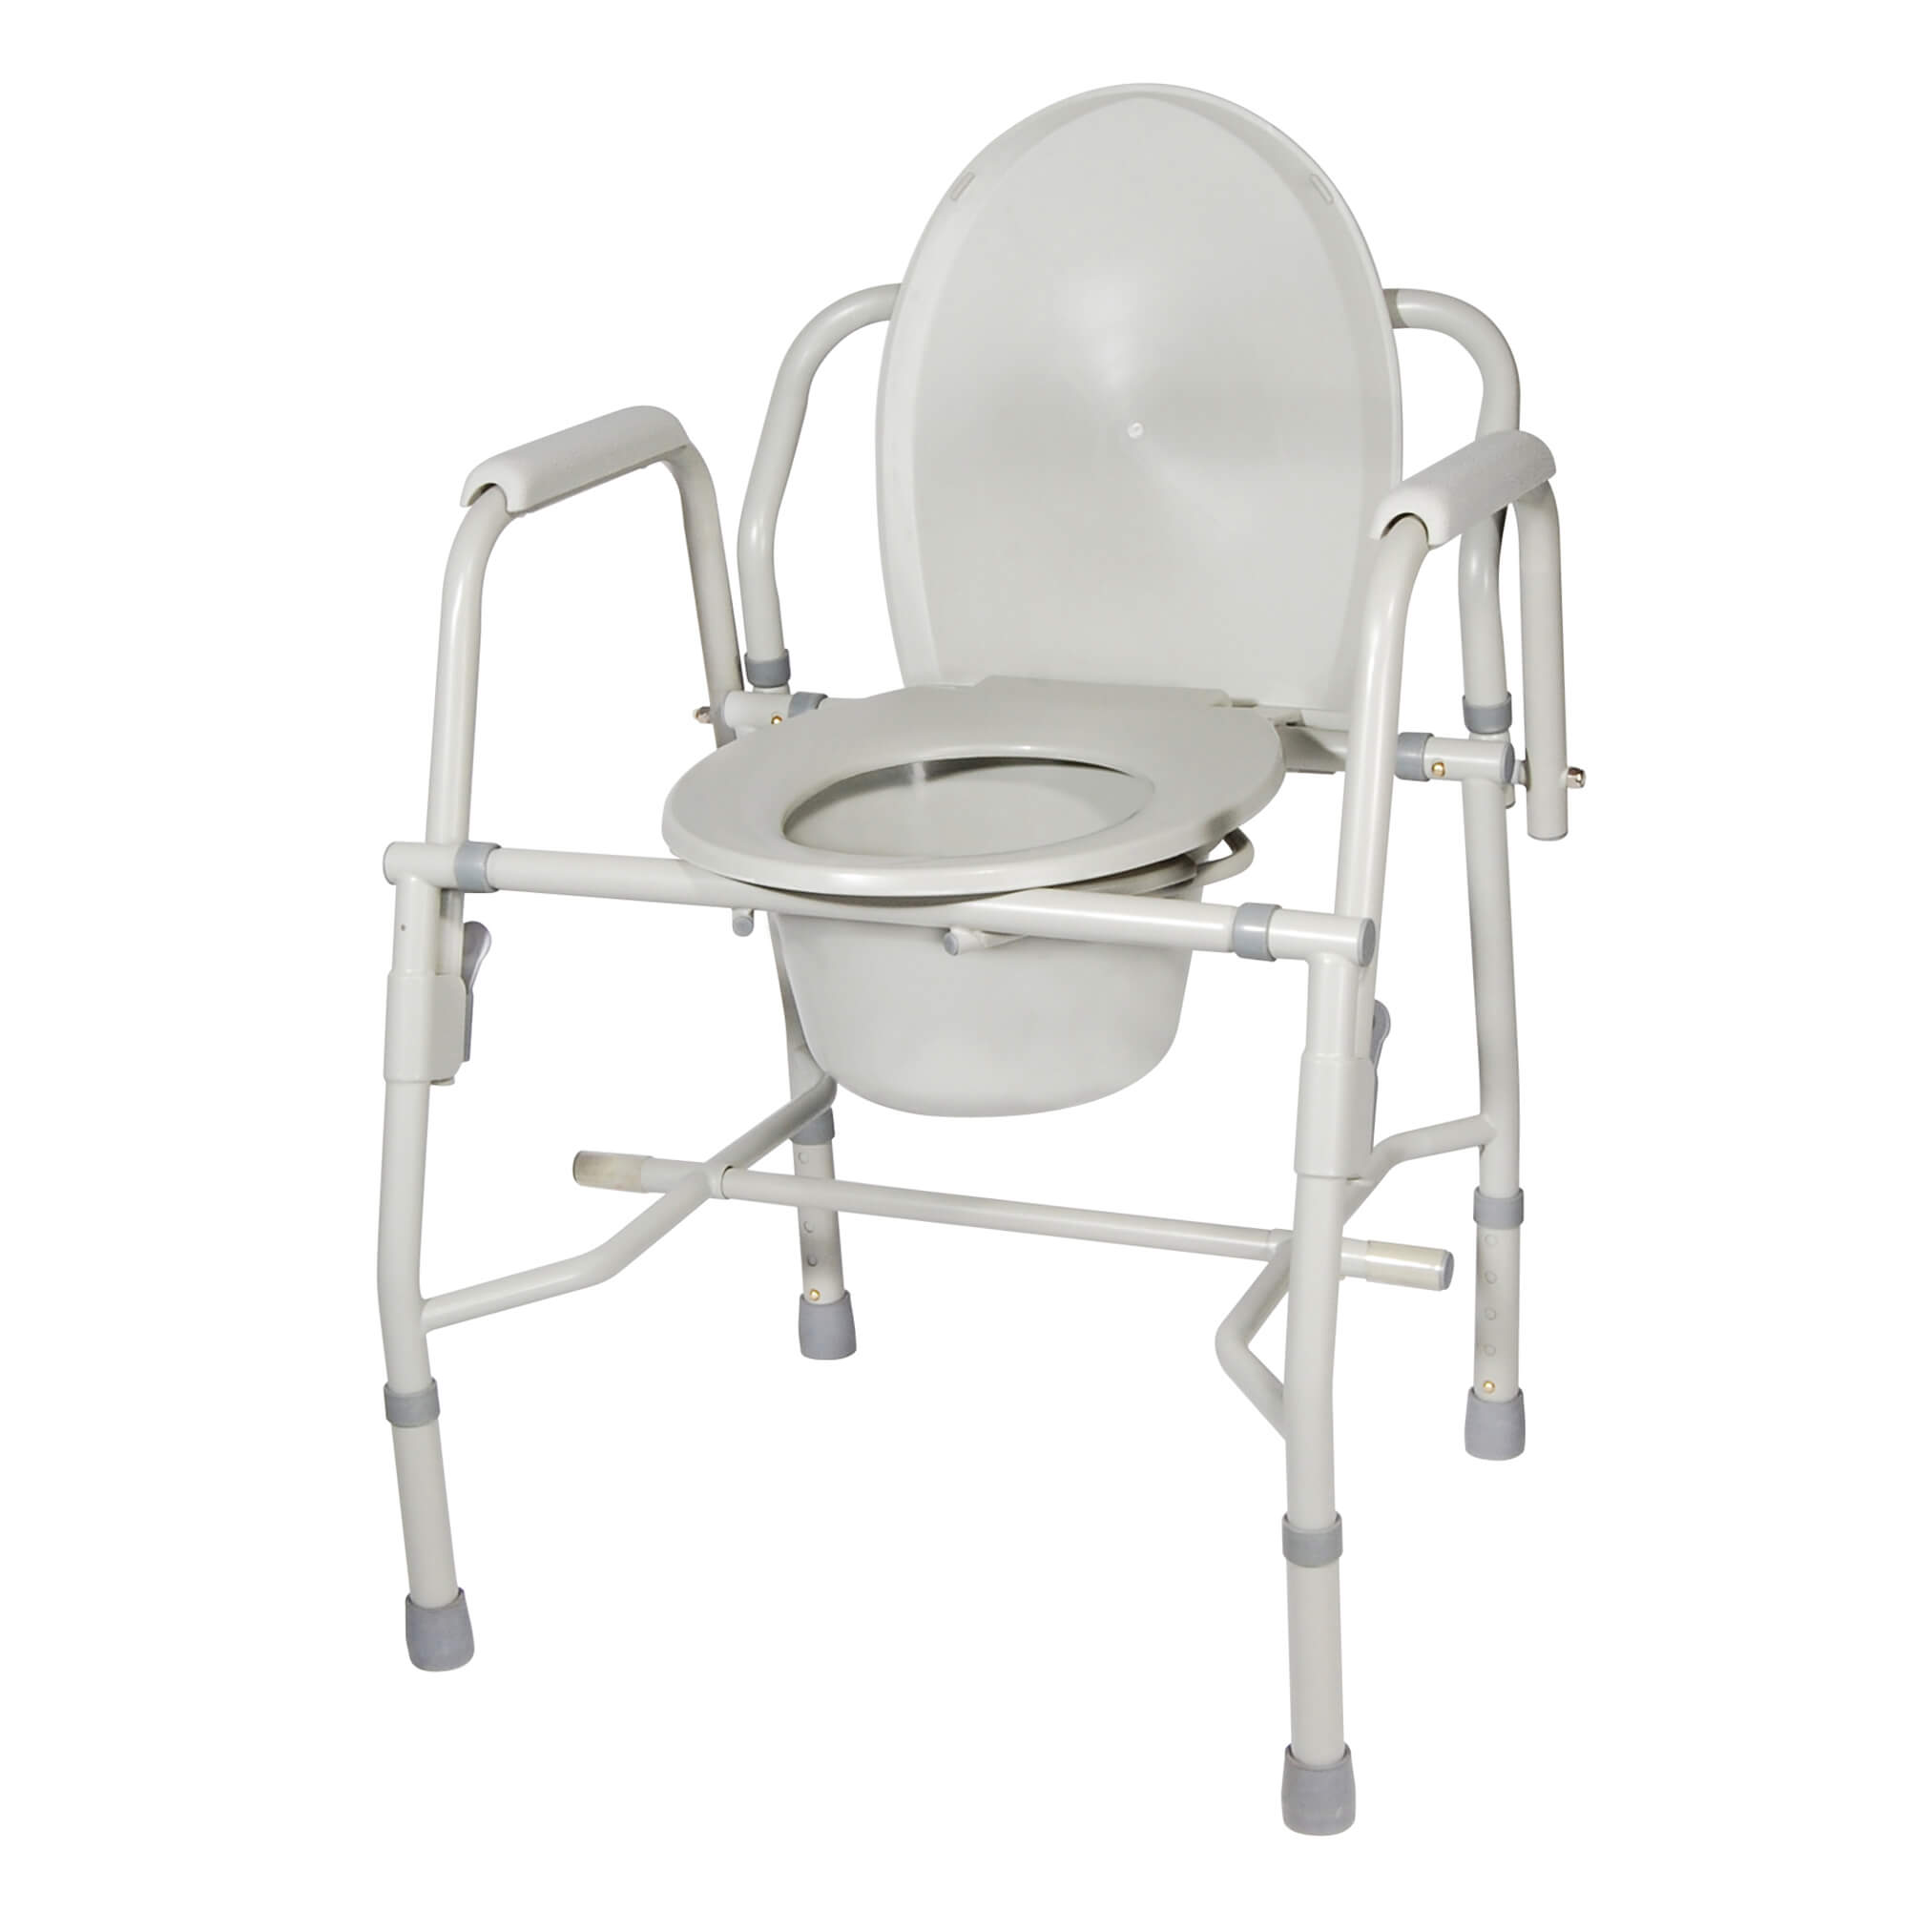 Bedside Commode Chair Steel Drop Arm Bedside Commode With Padded Arms